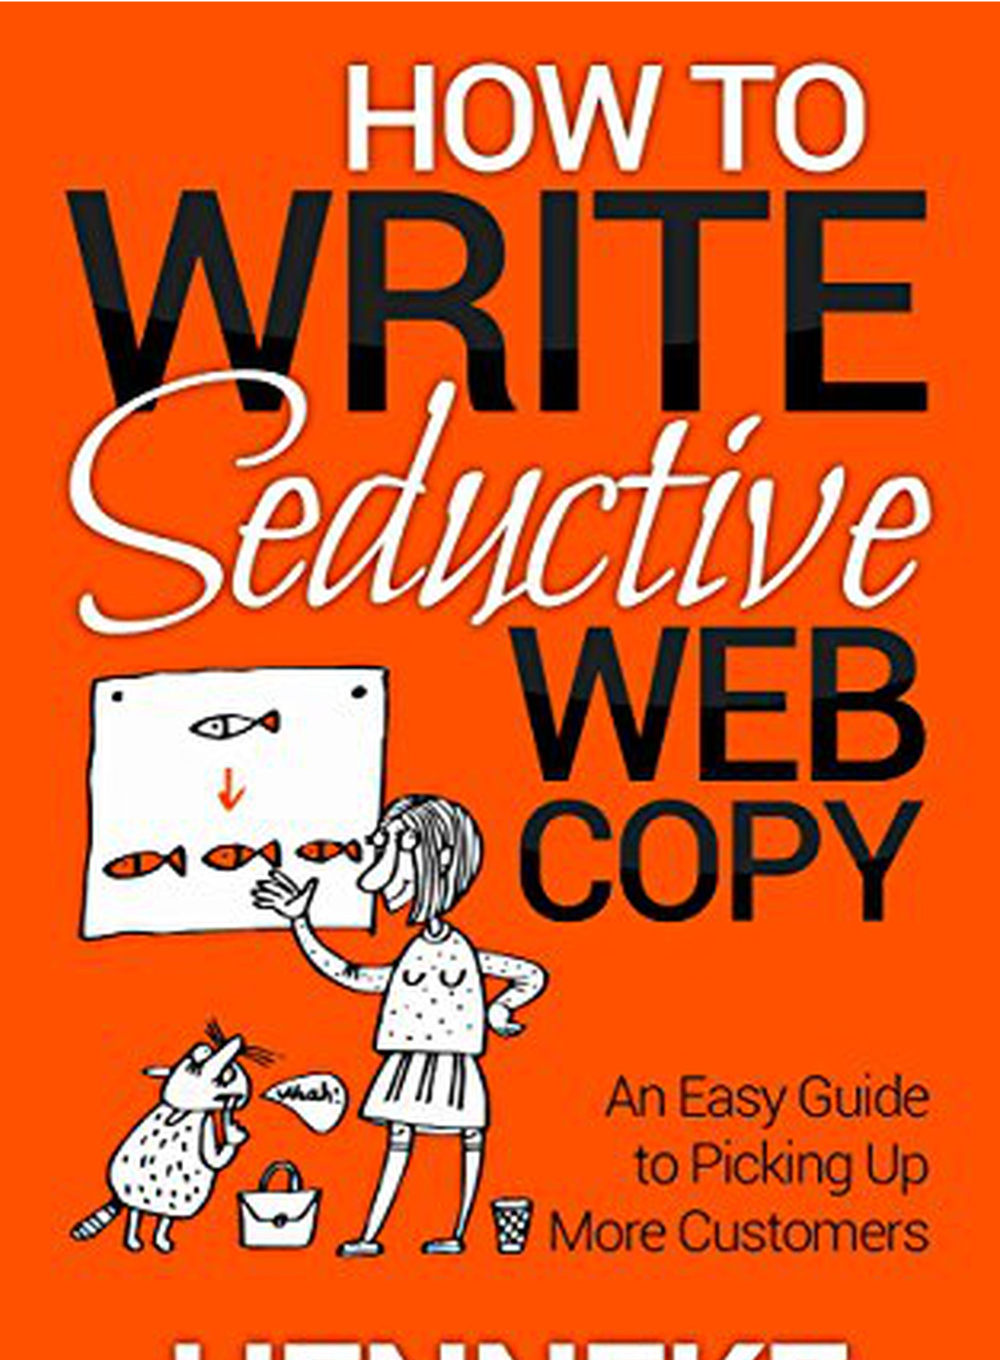 How to write Seductive Web Copy